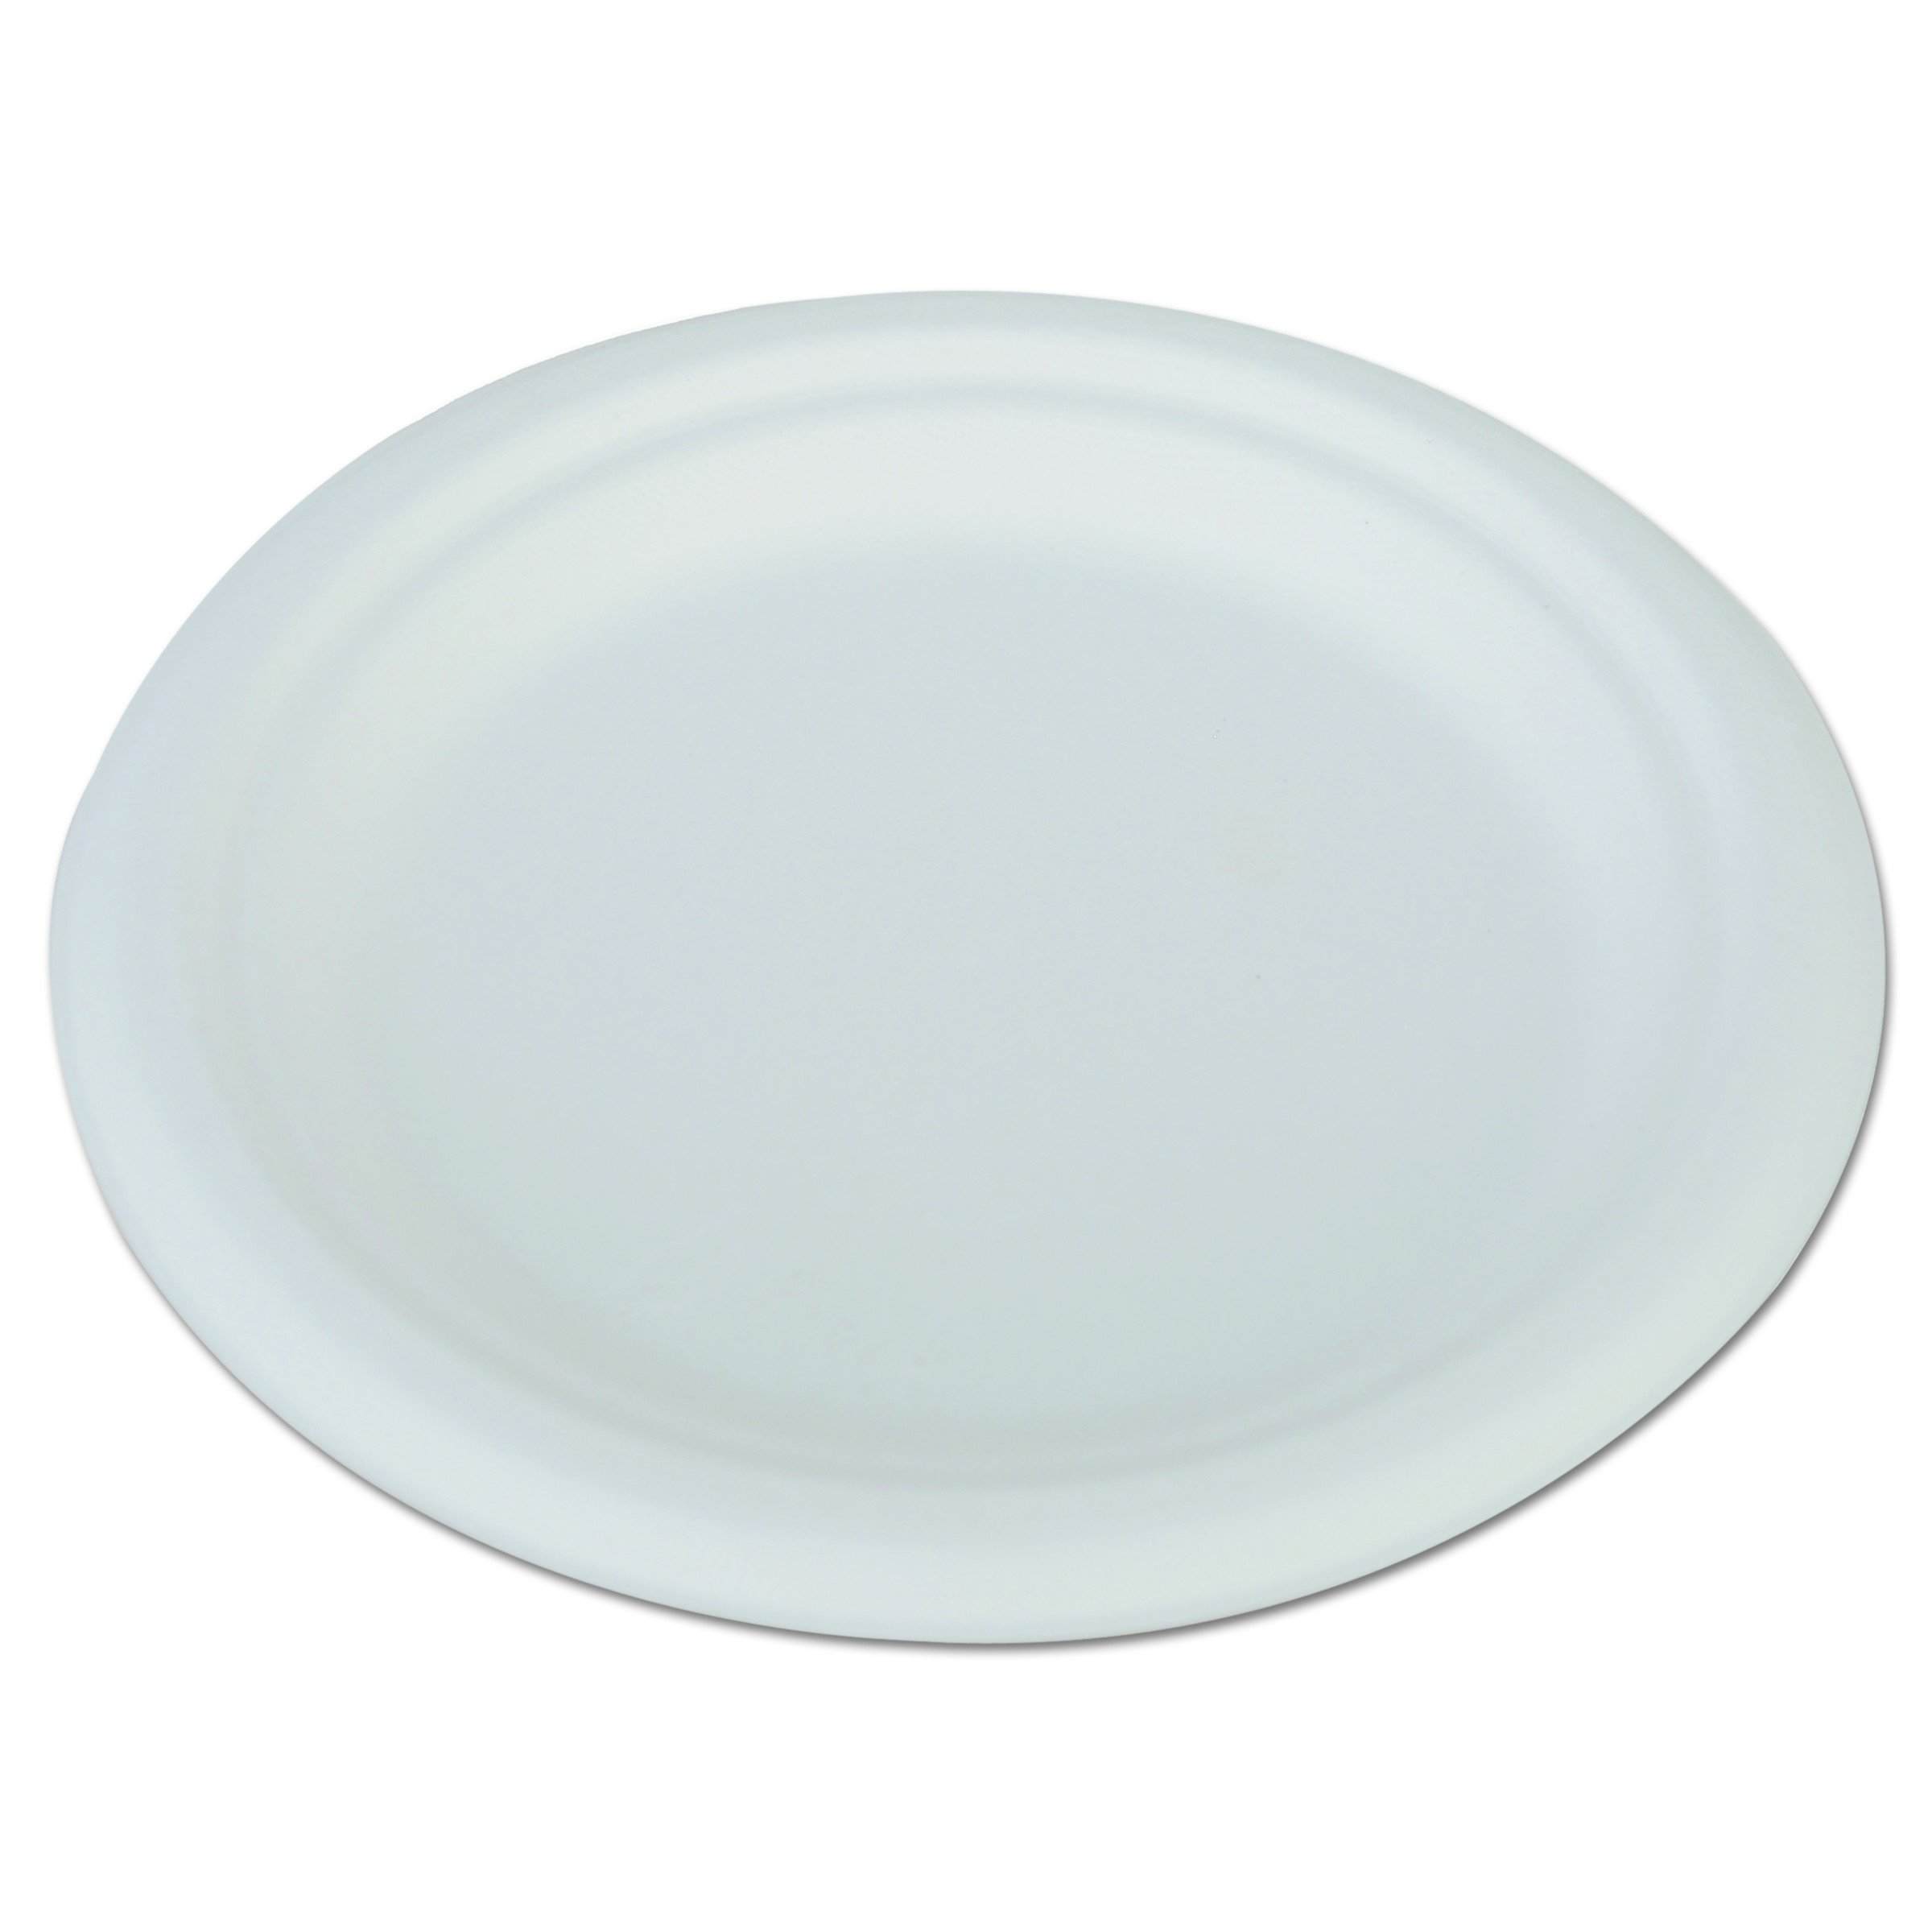 Southern Champion Tray 18110 6'' ChampWare Round Molded Fiber White Heavy Weight Pulp Plate (Case of 1,000)